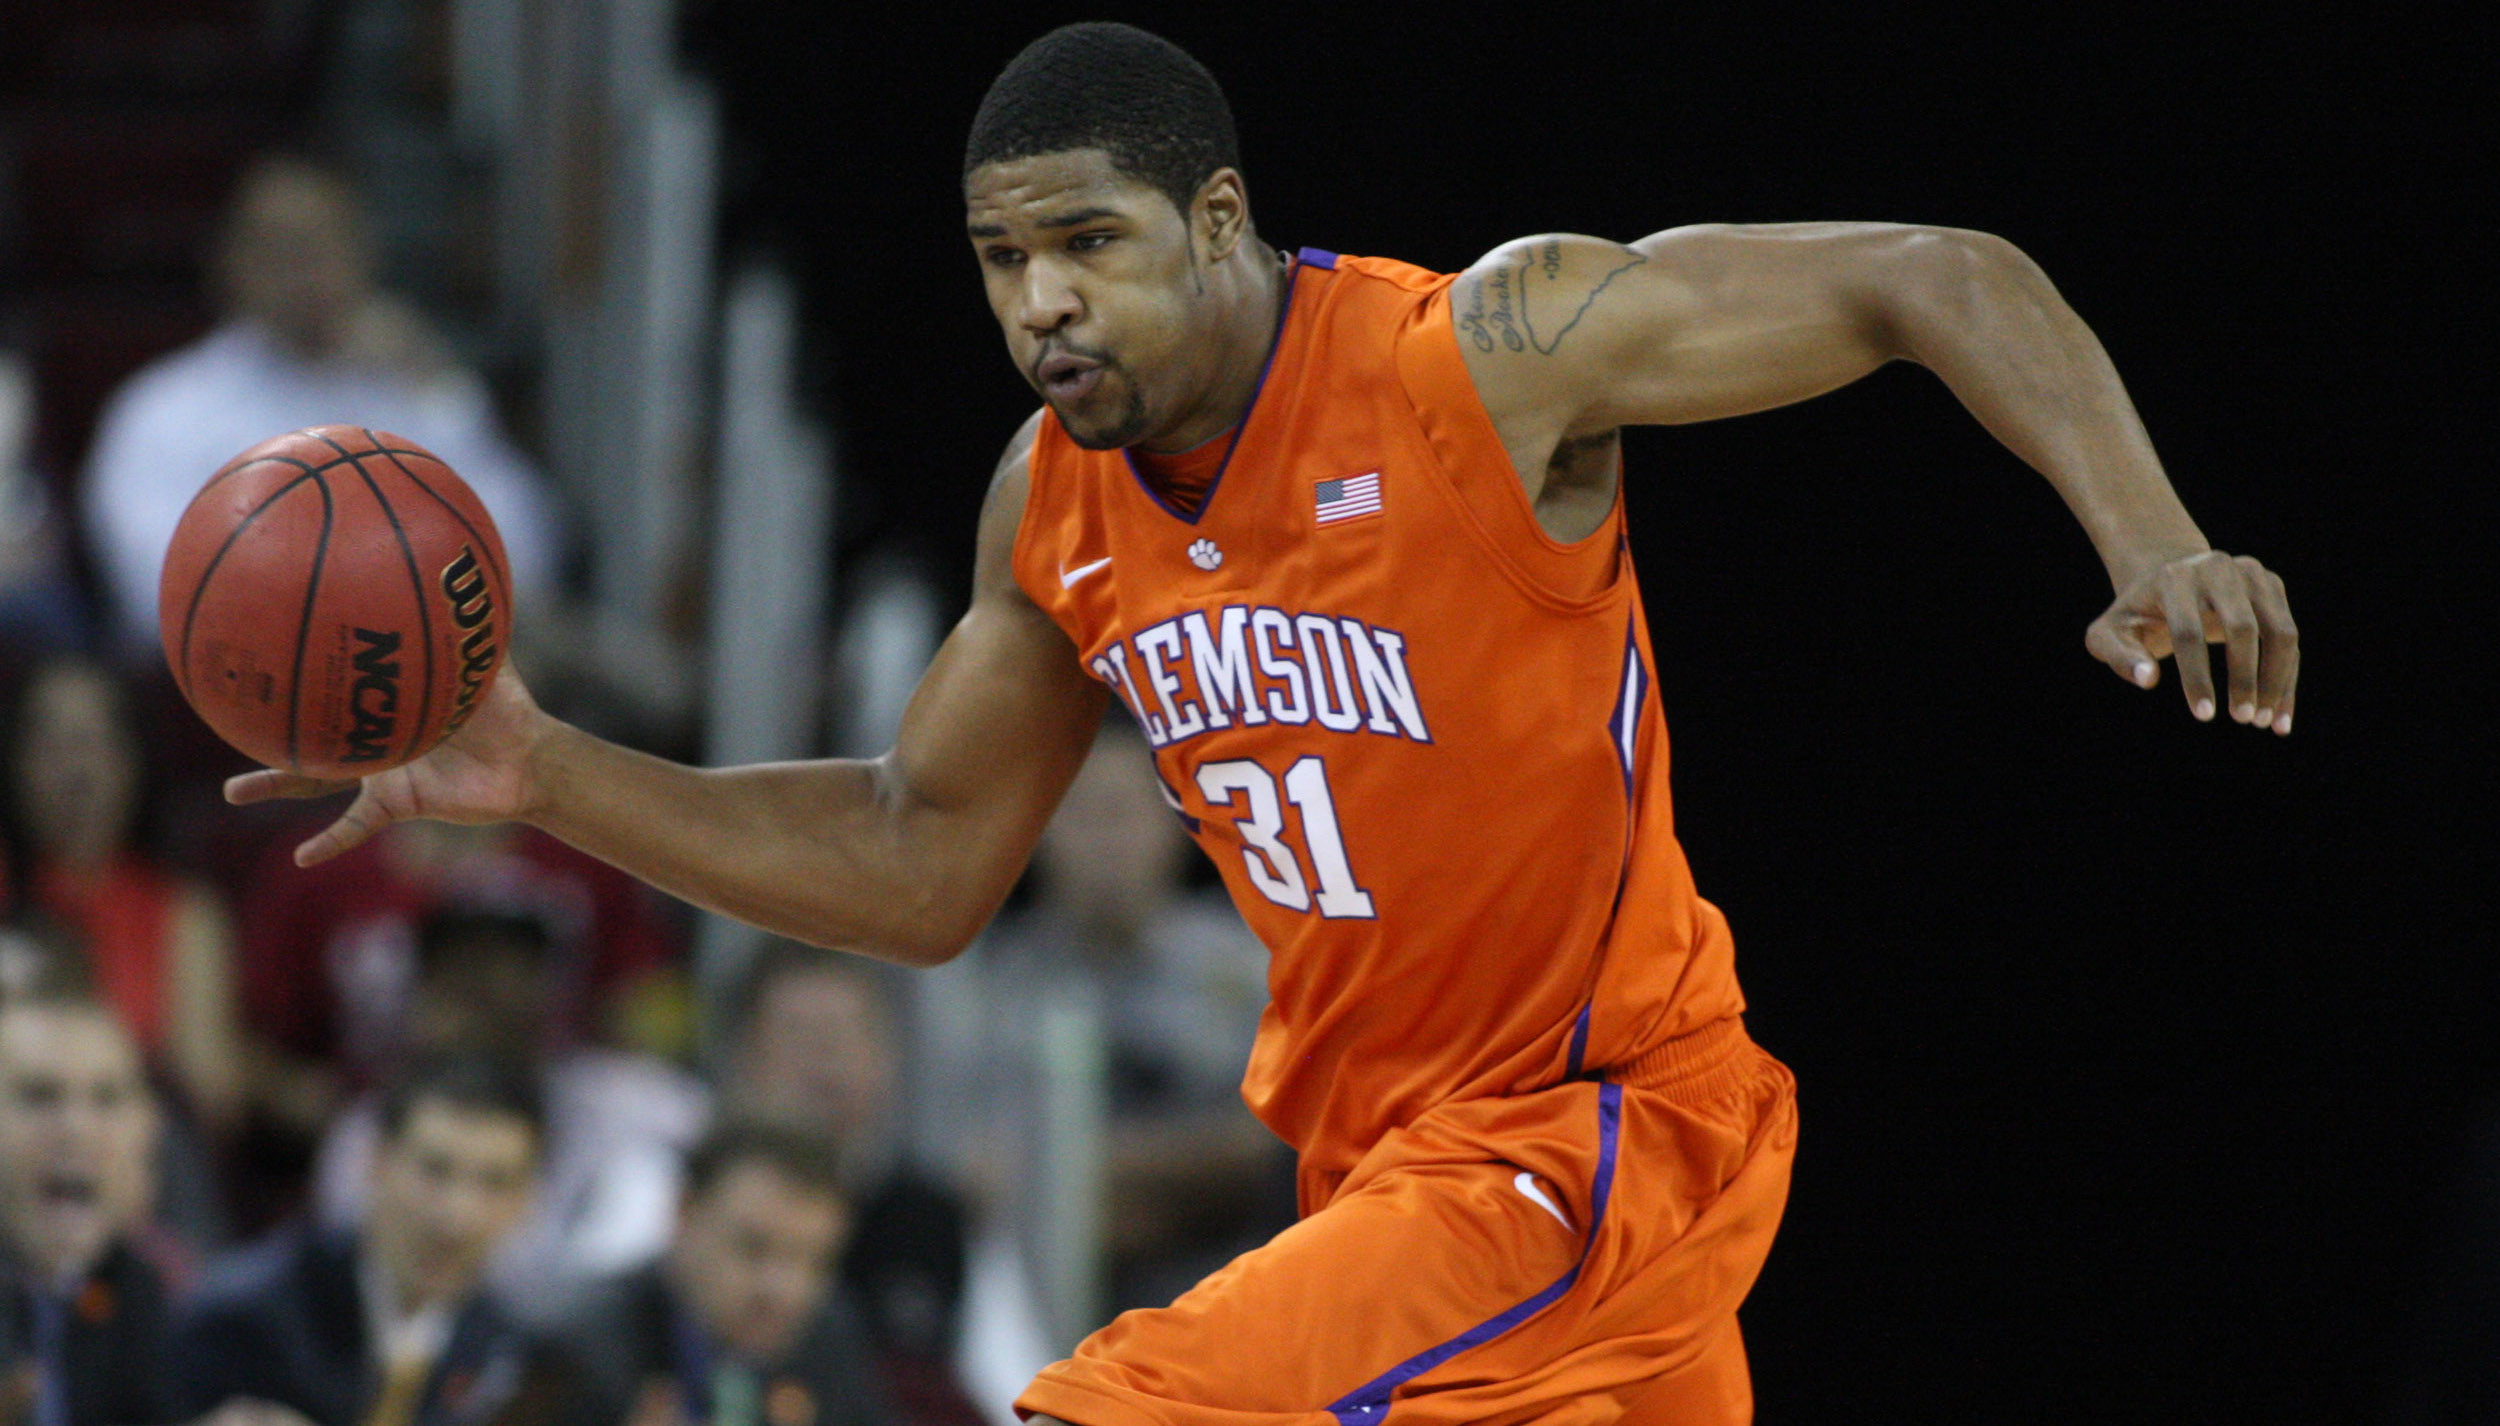 Clemson Rally Falls Short in 75-68 Loss at Boston College